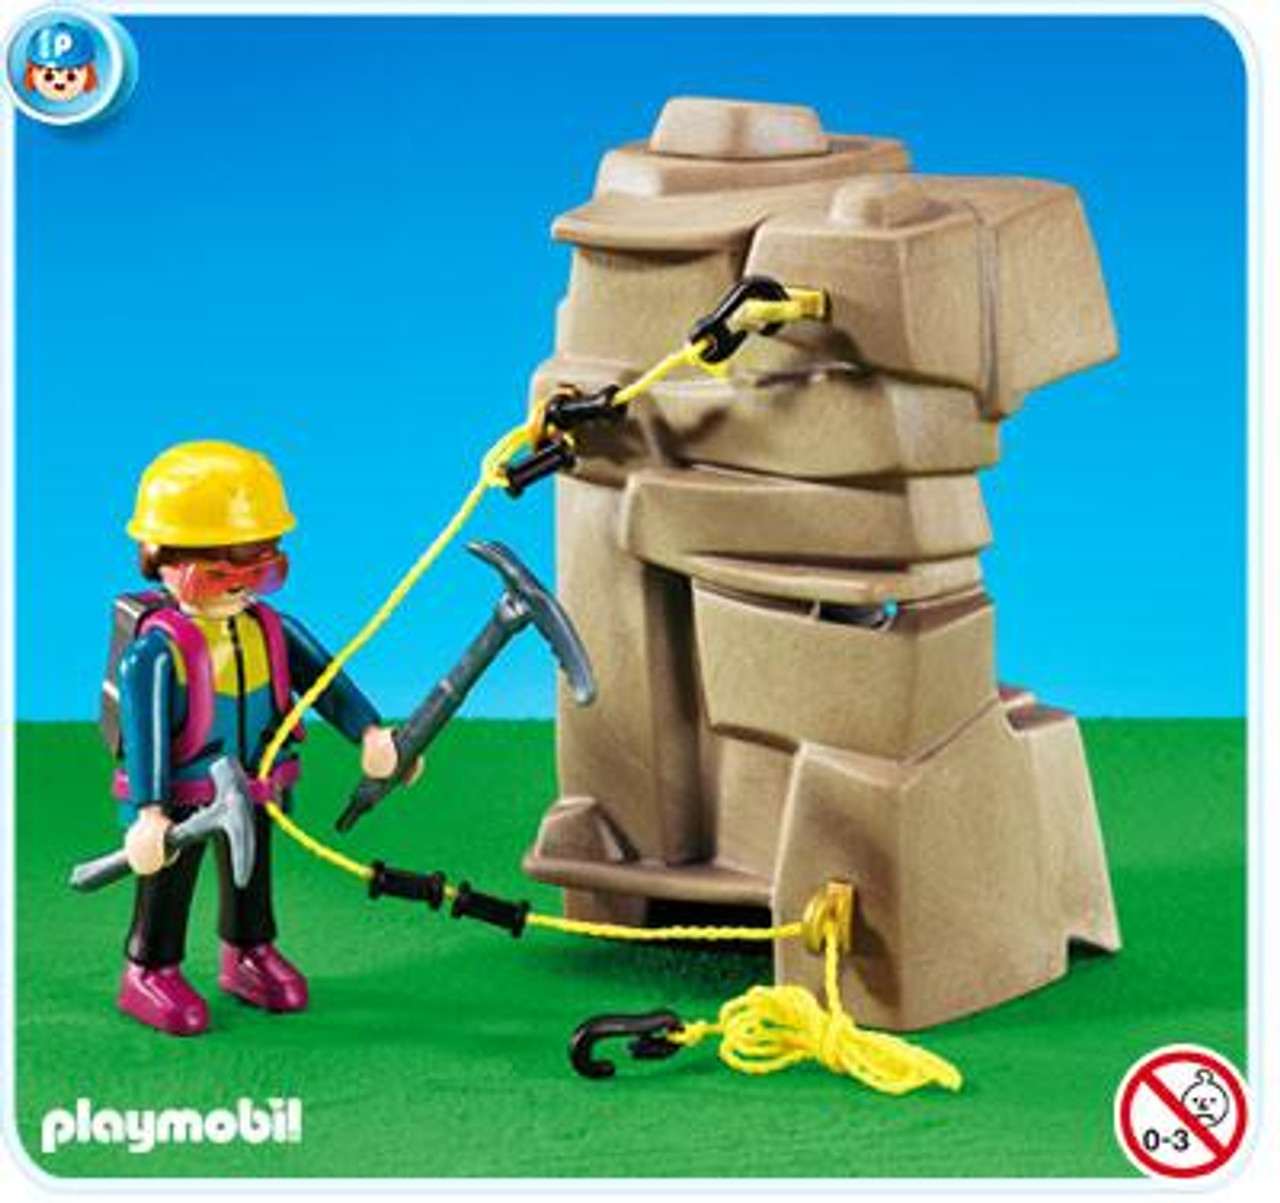 Playmobil Vacation & Leisure Mountaineer Set #7529